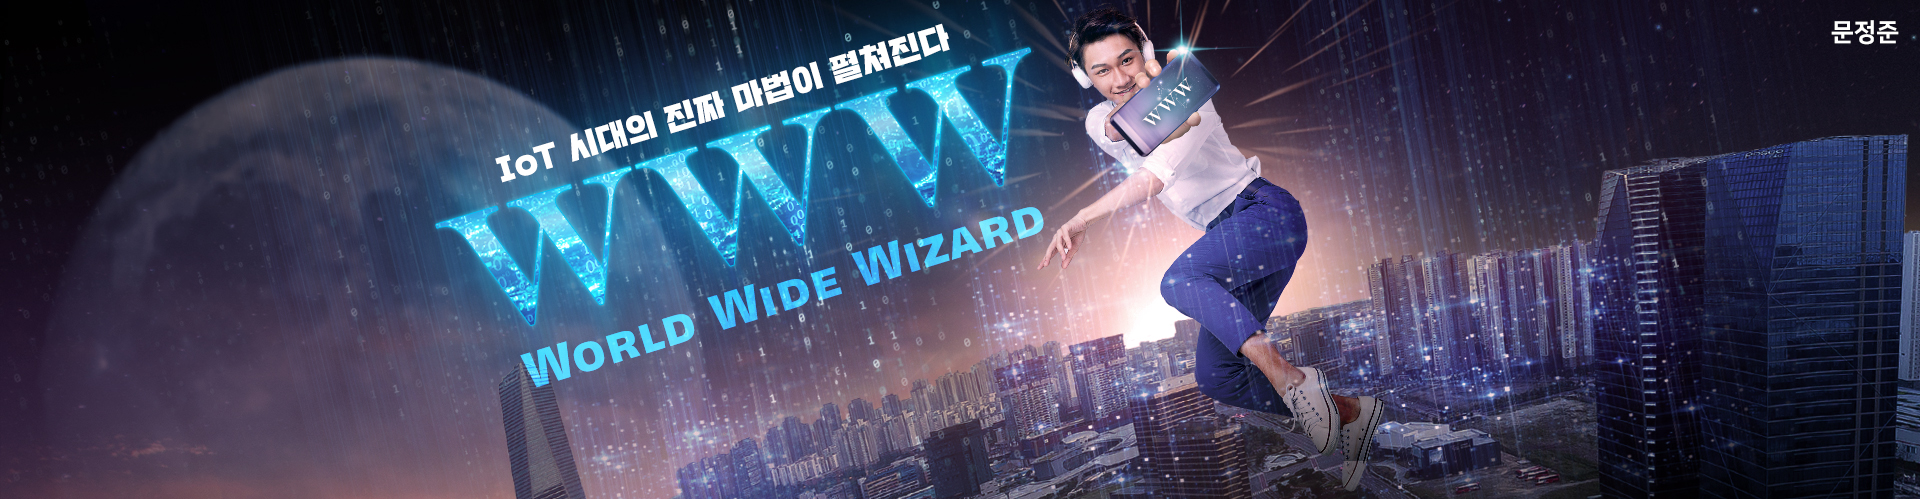 WWW(World Wide Wizard)스토리 이미지